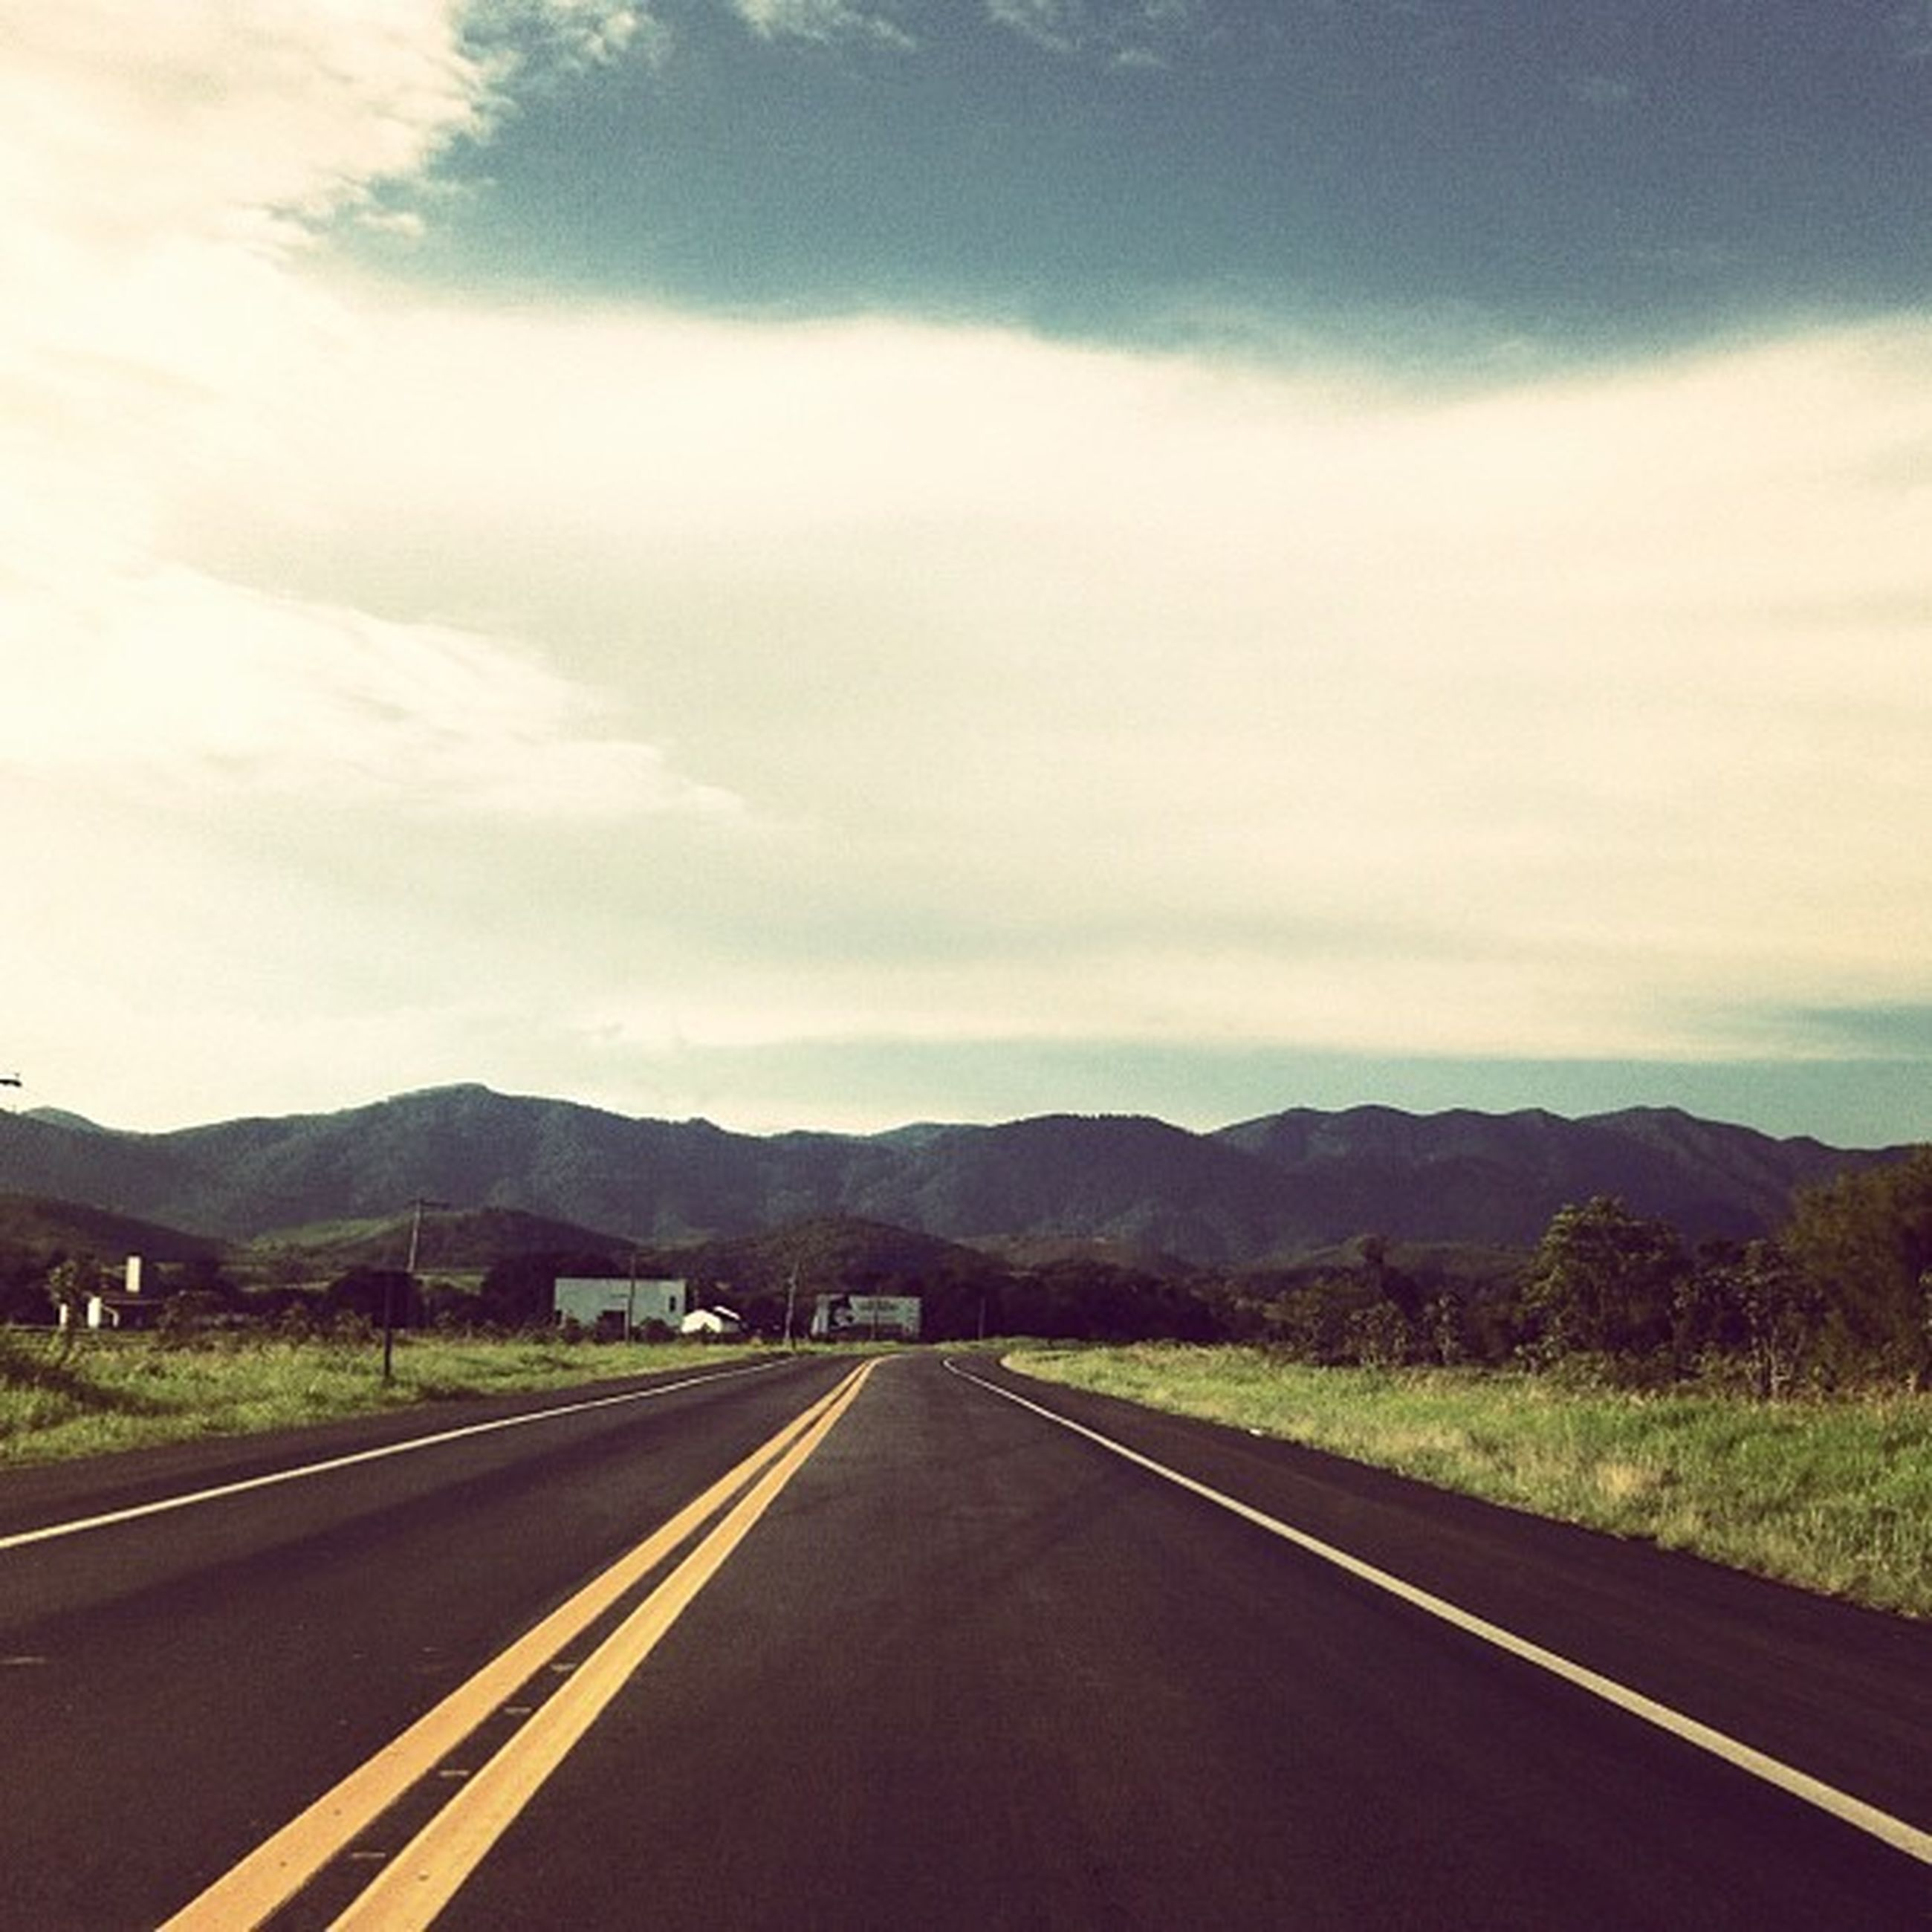 road, transportation, mountain, the way forward, sky, road marking, mountain range, country road, diminishing perspective, cloud - sky, landscape, vanishing point, cloud, highway, scenics, tranquil scene, empty, car, cloudy, nature